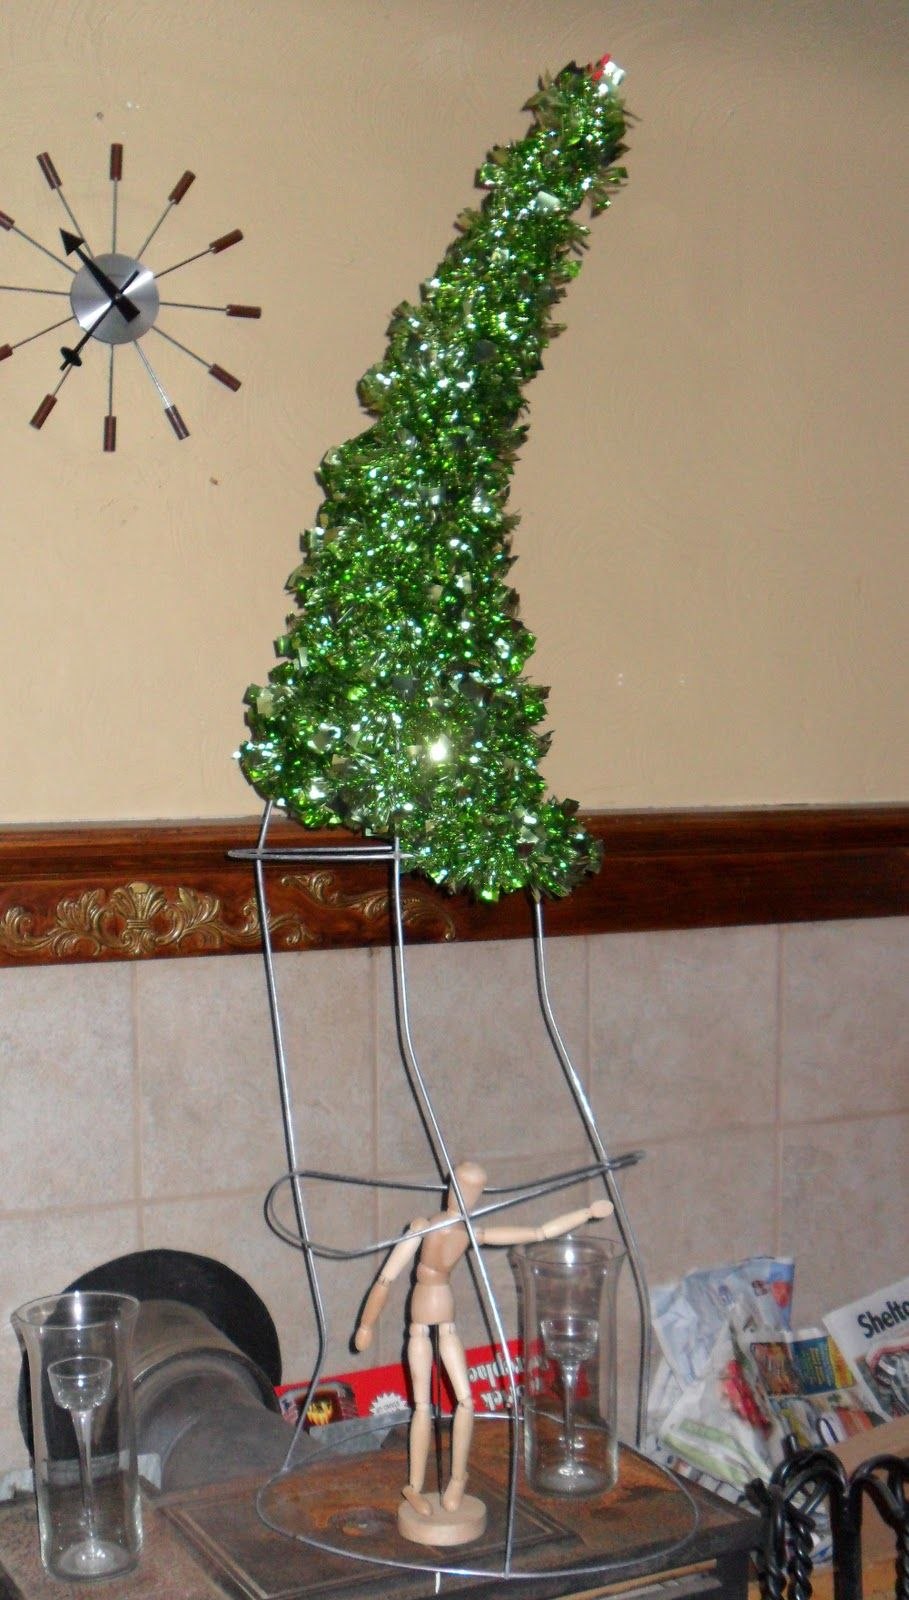 Wait...What?!? How does tomato cages go with Christmas? It's simple my dear, Christmas time is ...